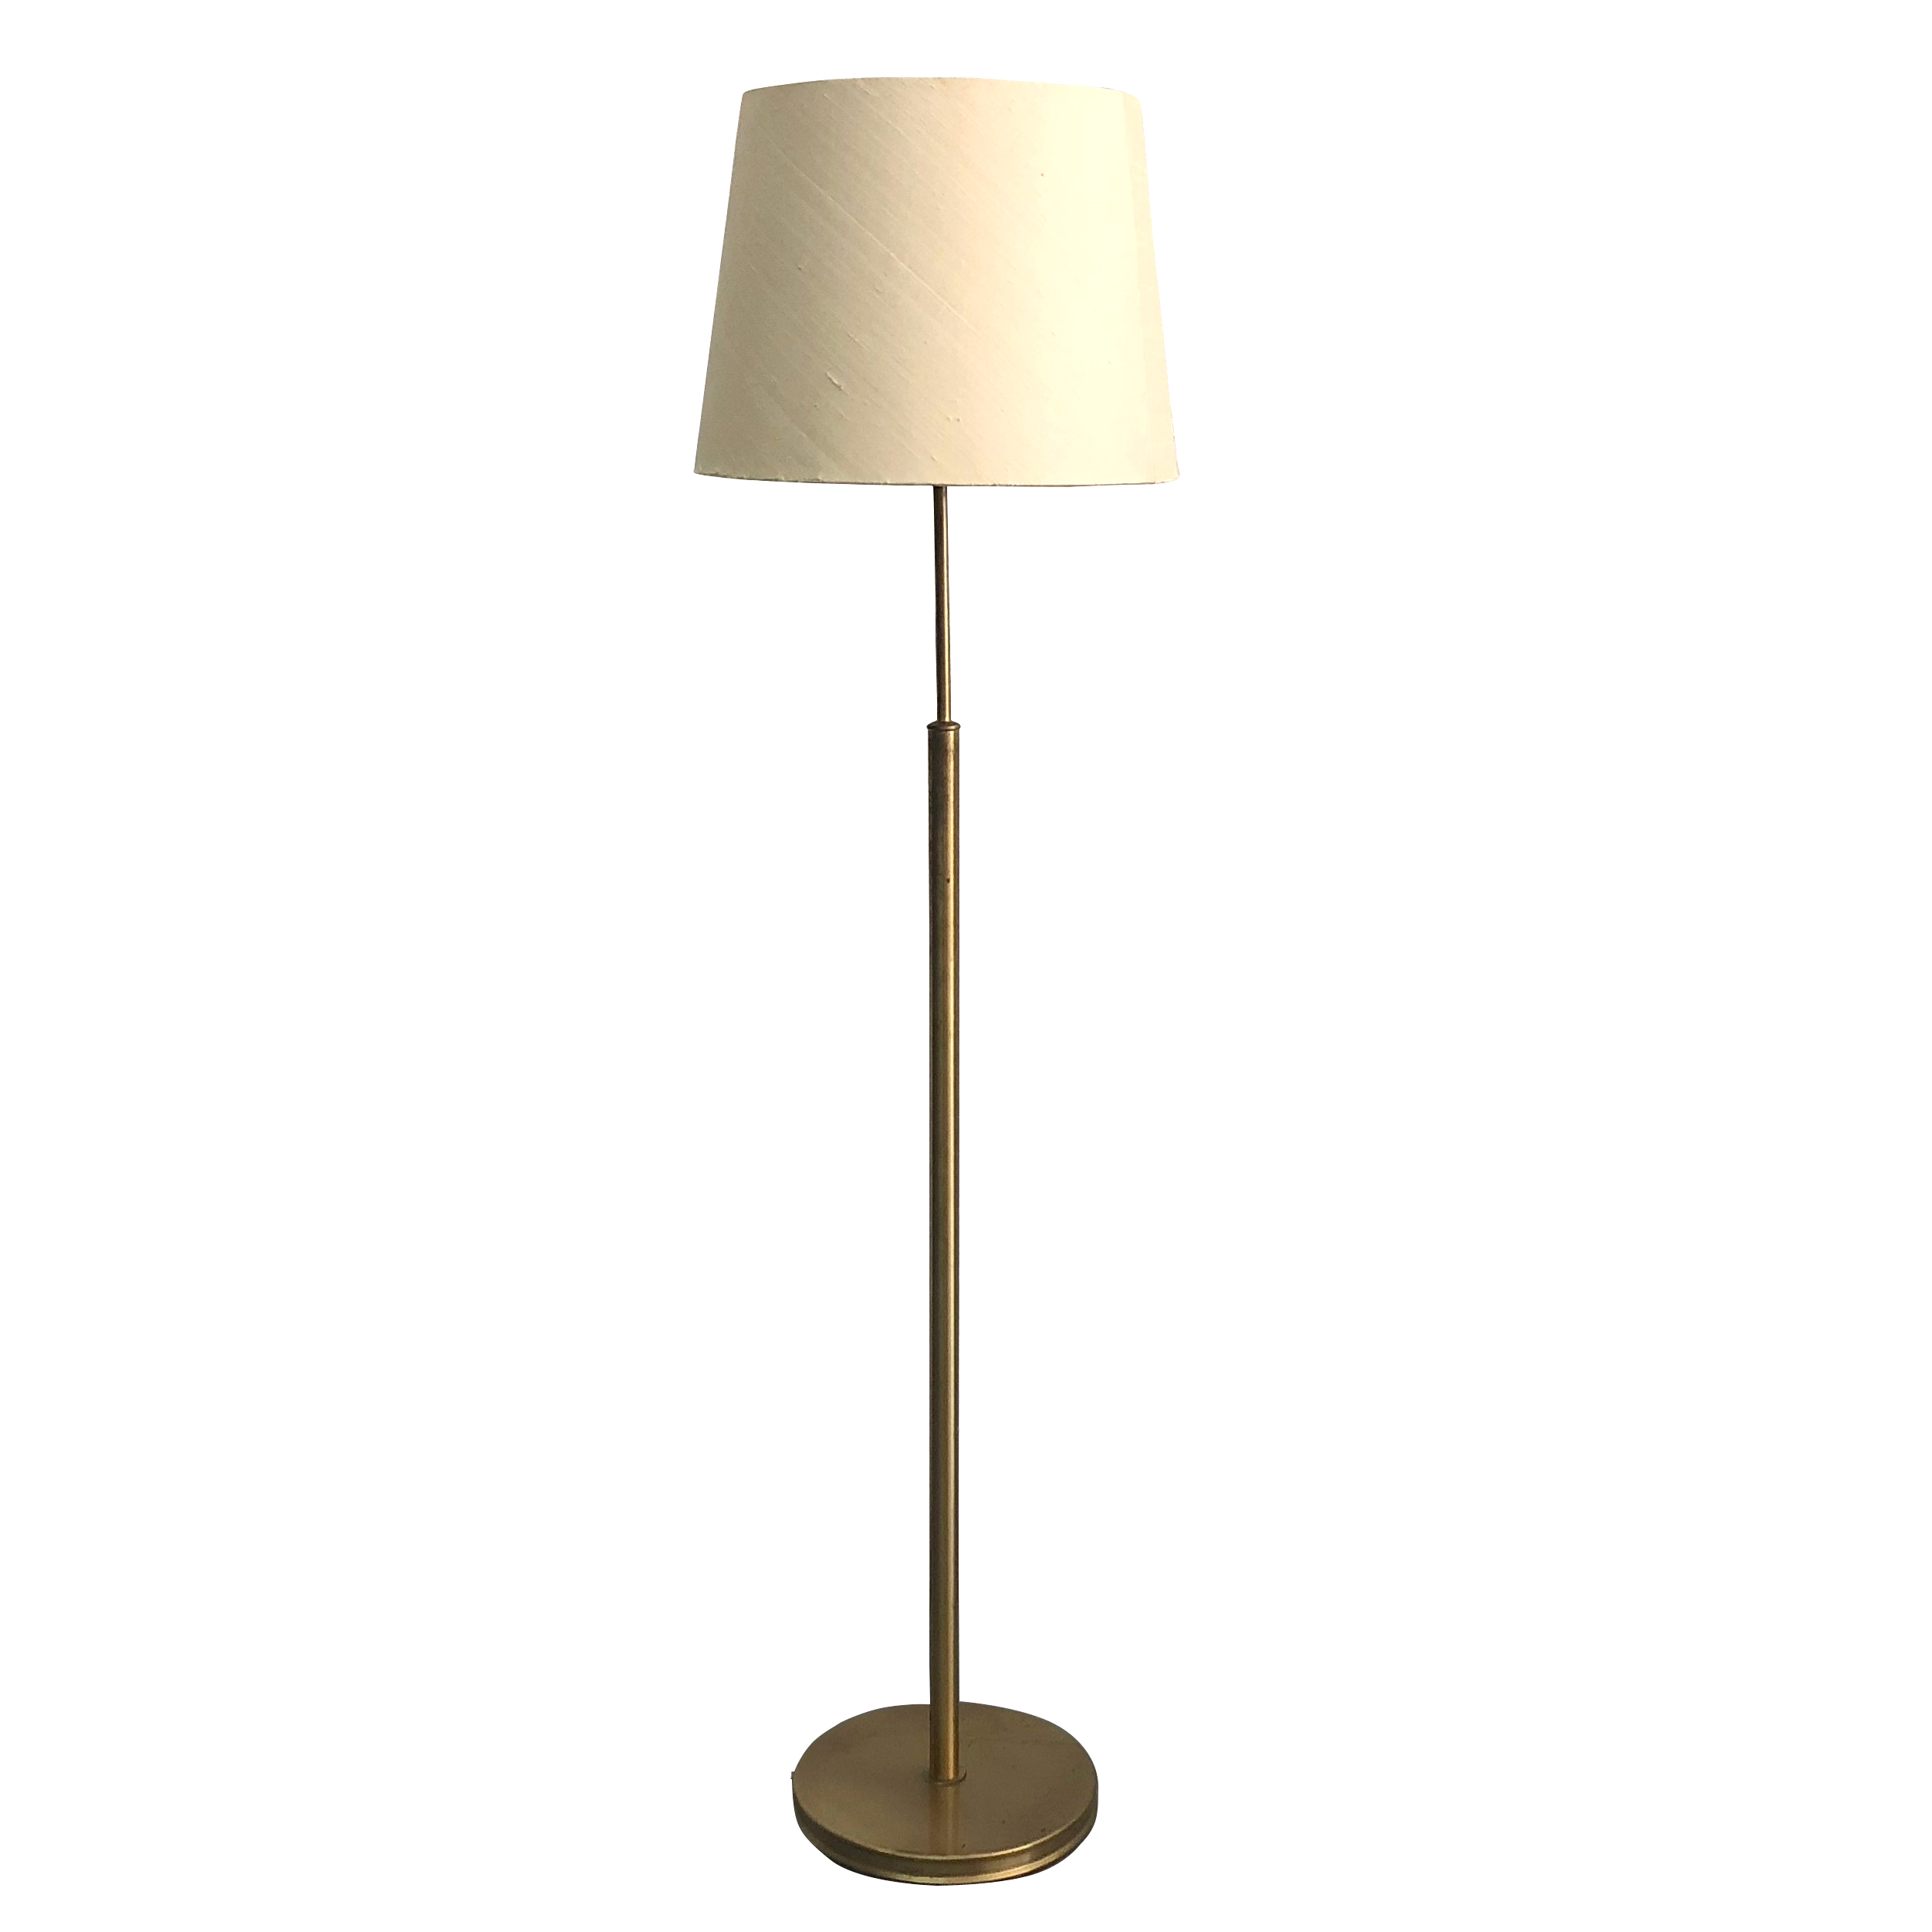 20th Century Model 2148, Swedish Svenskt Tenn Brass Floor Lamp by Josef Frank